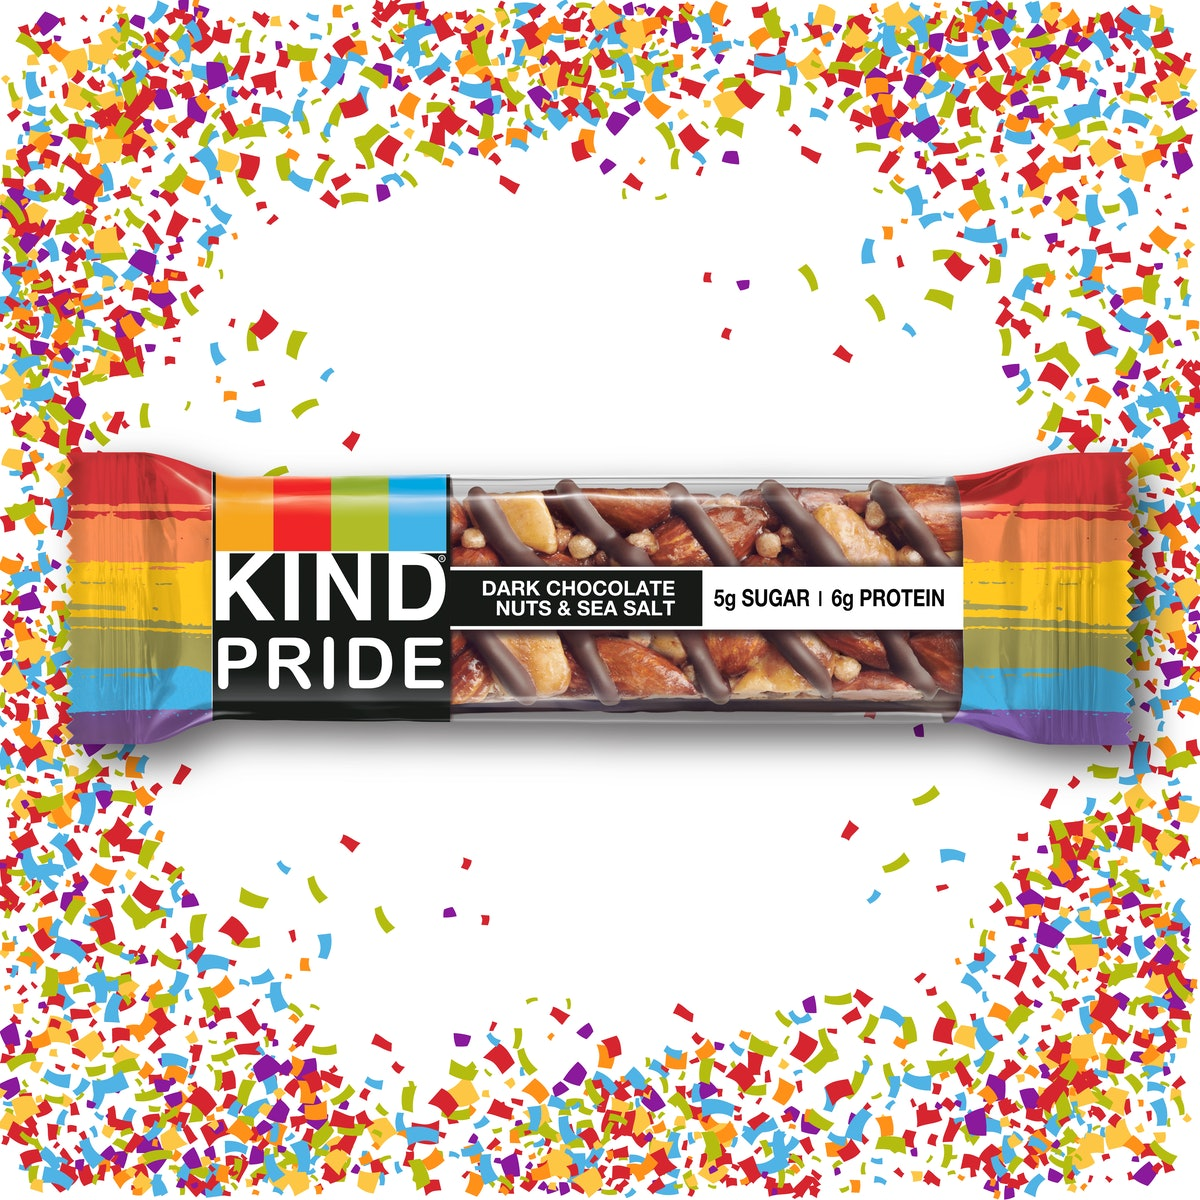 KIND's Pride 2021 bars and LGBTQ+ initiatives support a great cause.